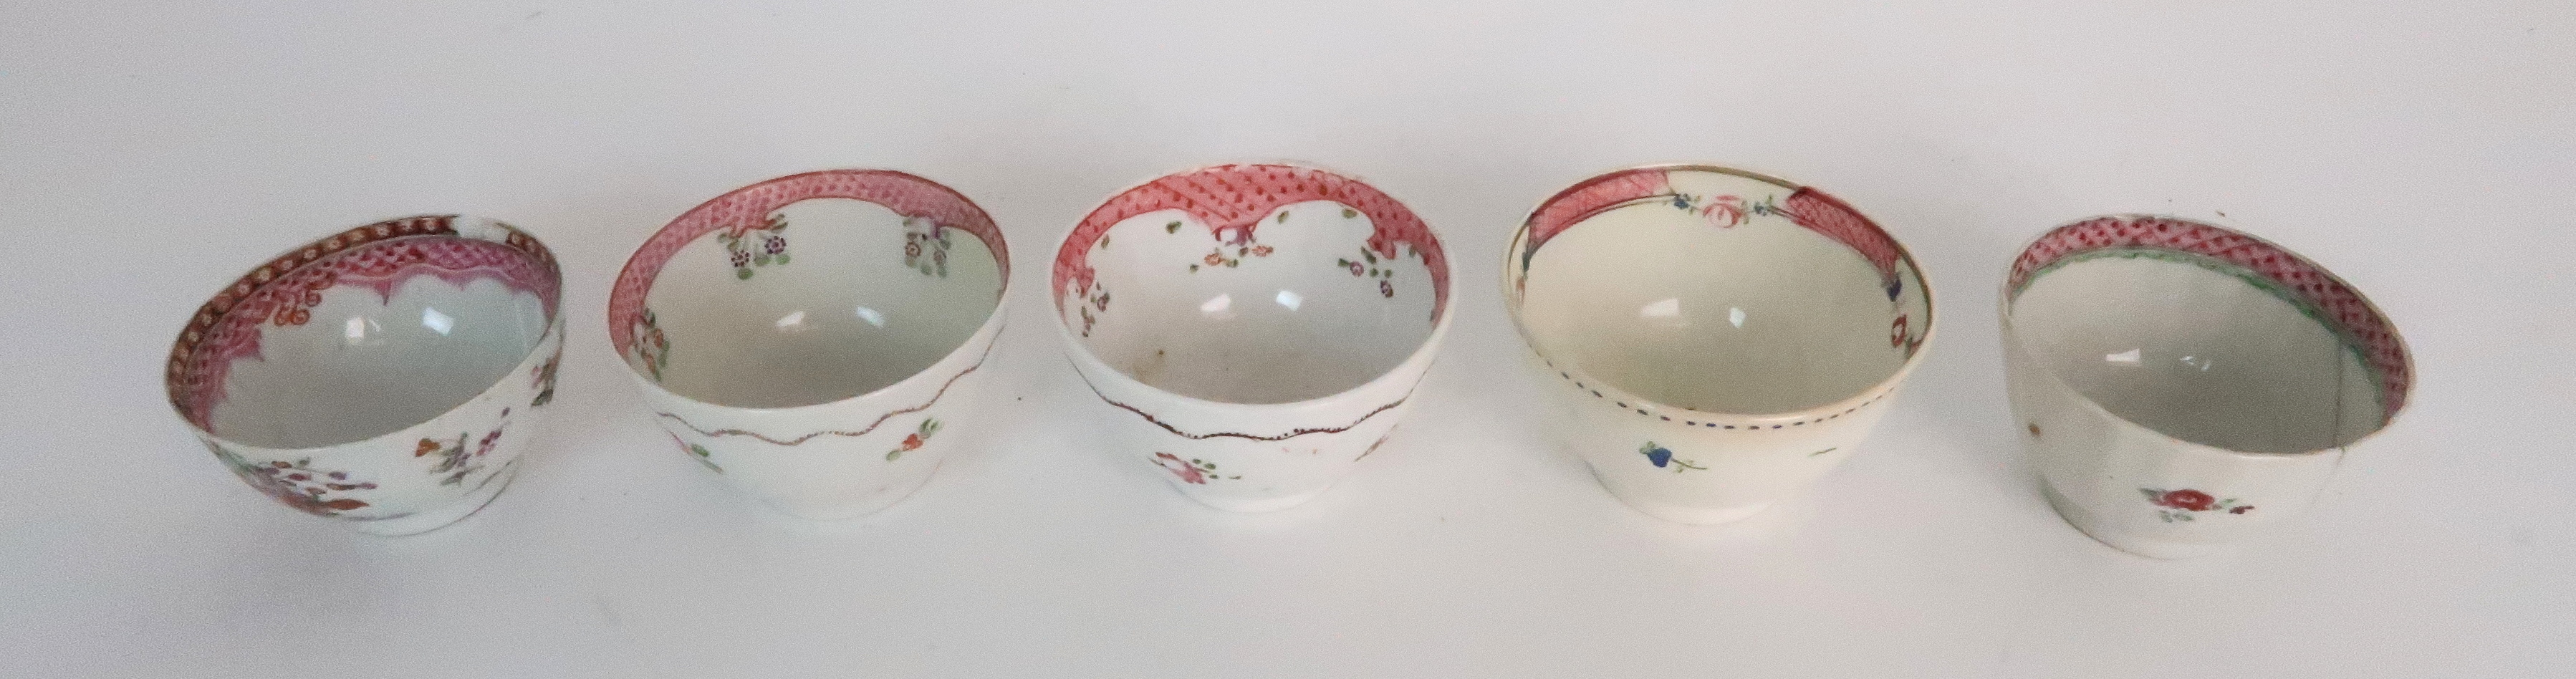 A COLLECTION OF TEA BOWLS AND SAUCERS each with pink scale and floral decoration including New Hall; - Image 10 of 12